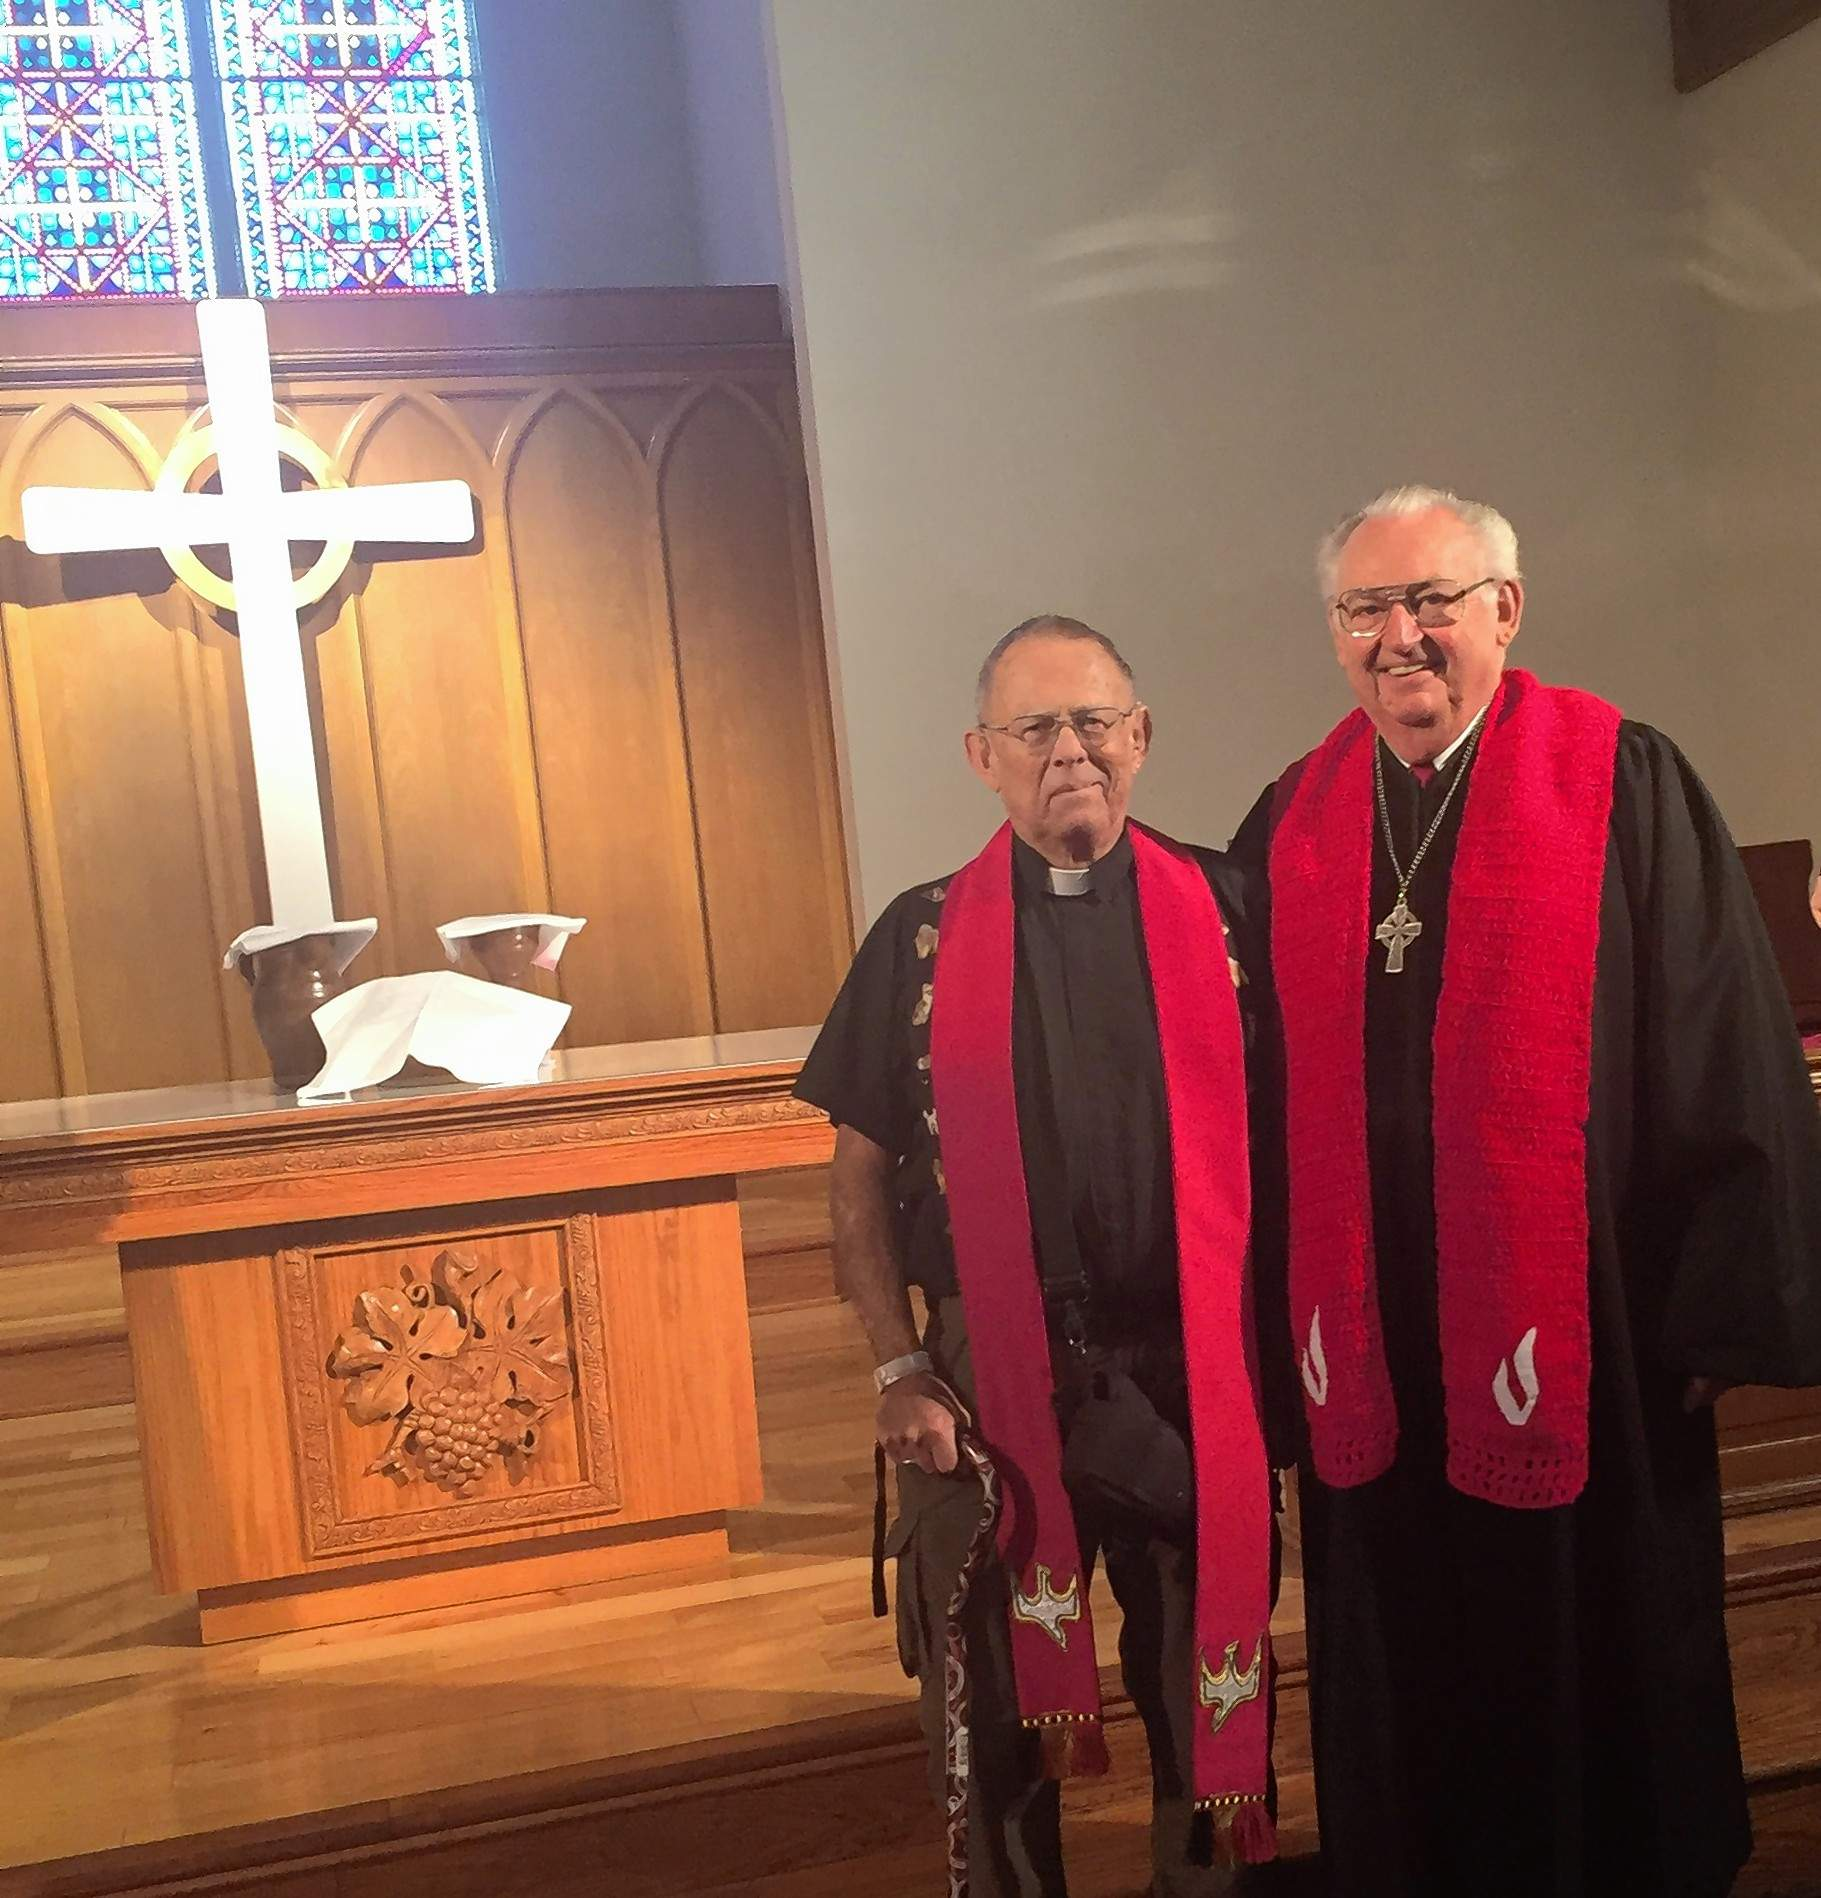 Father Timothy Goodman, left, and interim pastor, the Rev. Dan Whitfield, led the joint Pentecost service.